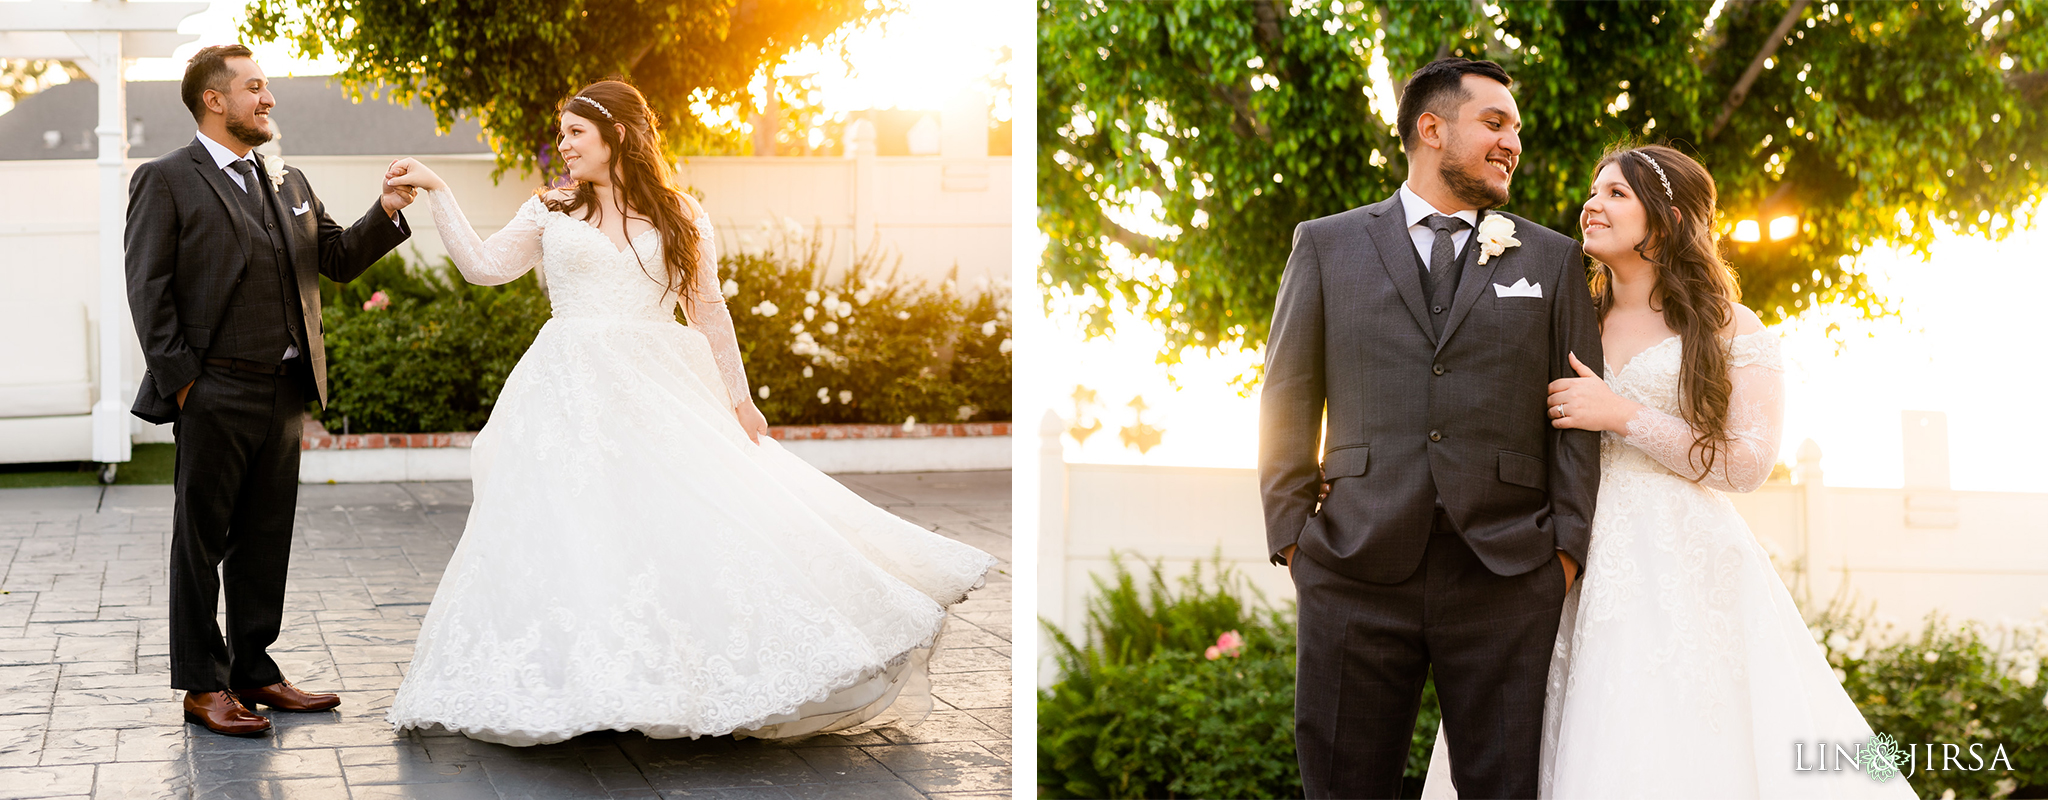 23 White House Banquets and Events Center Anaheim Wedding Photography